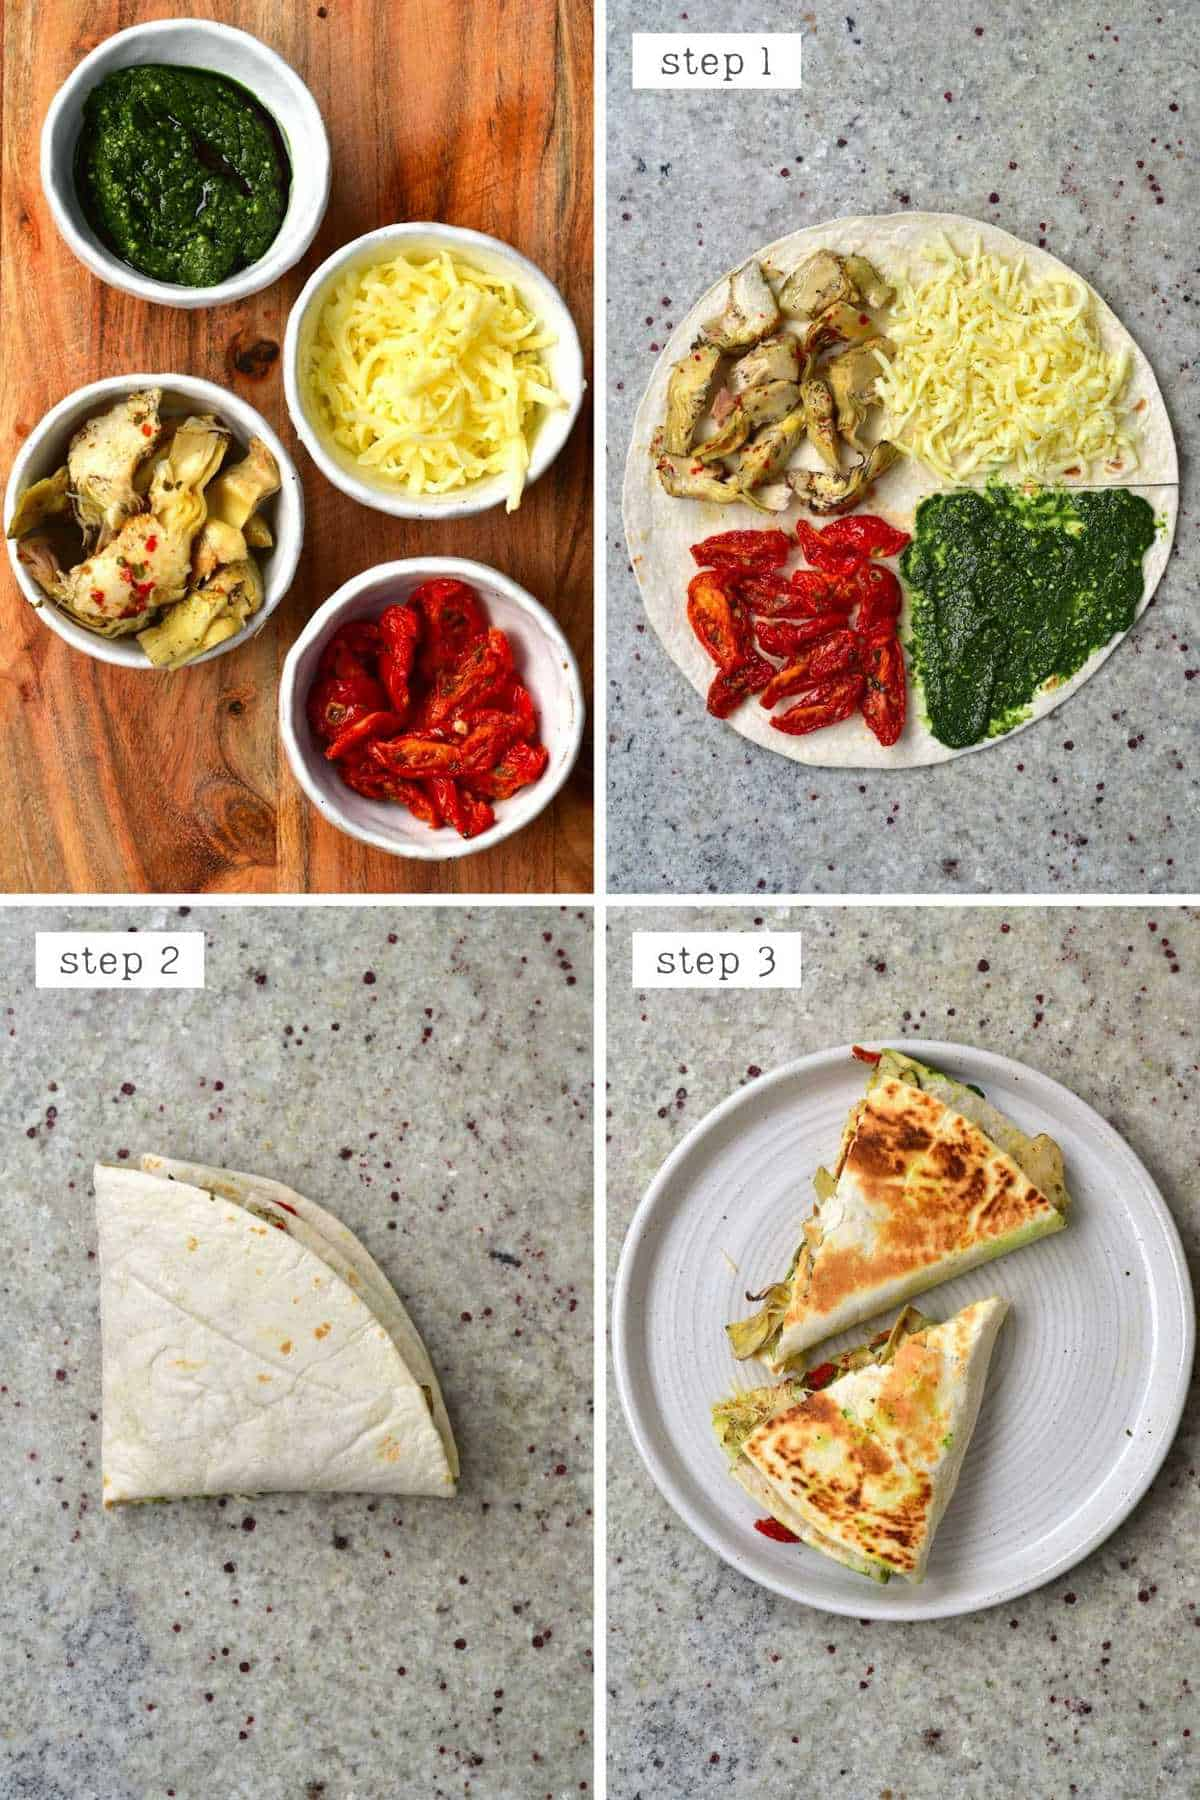 Steps for making Italy-inspired tortilla